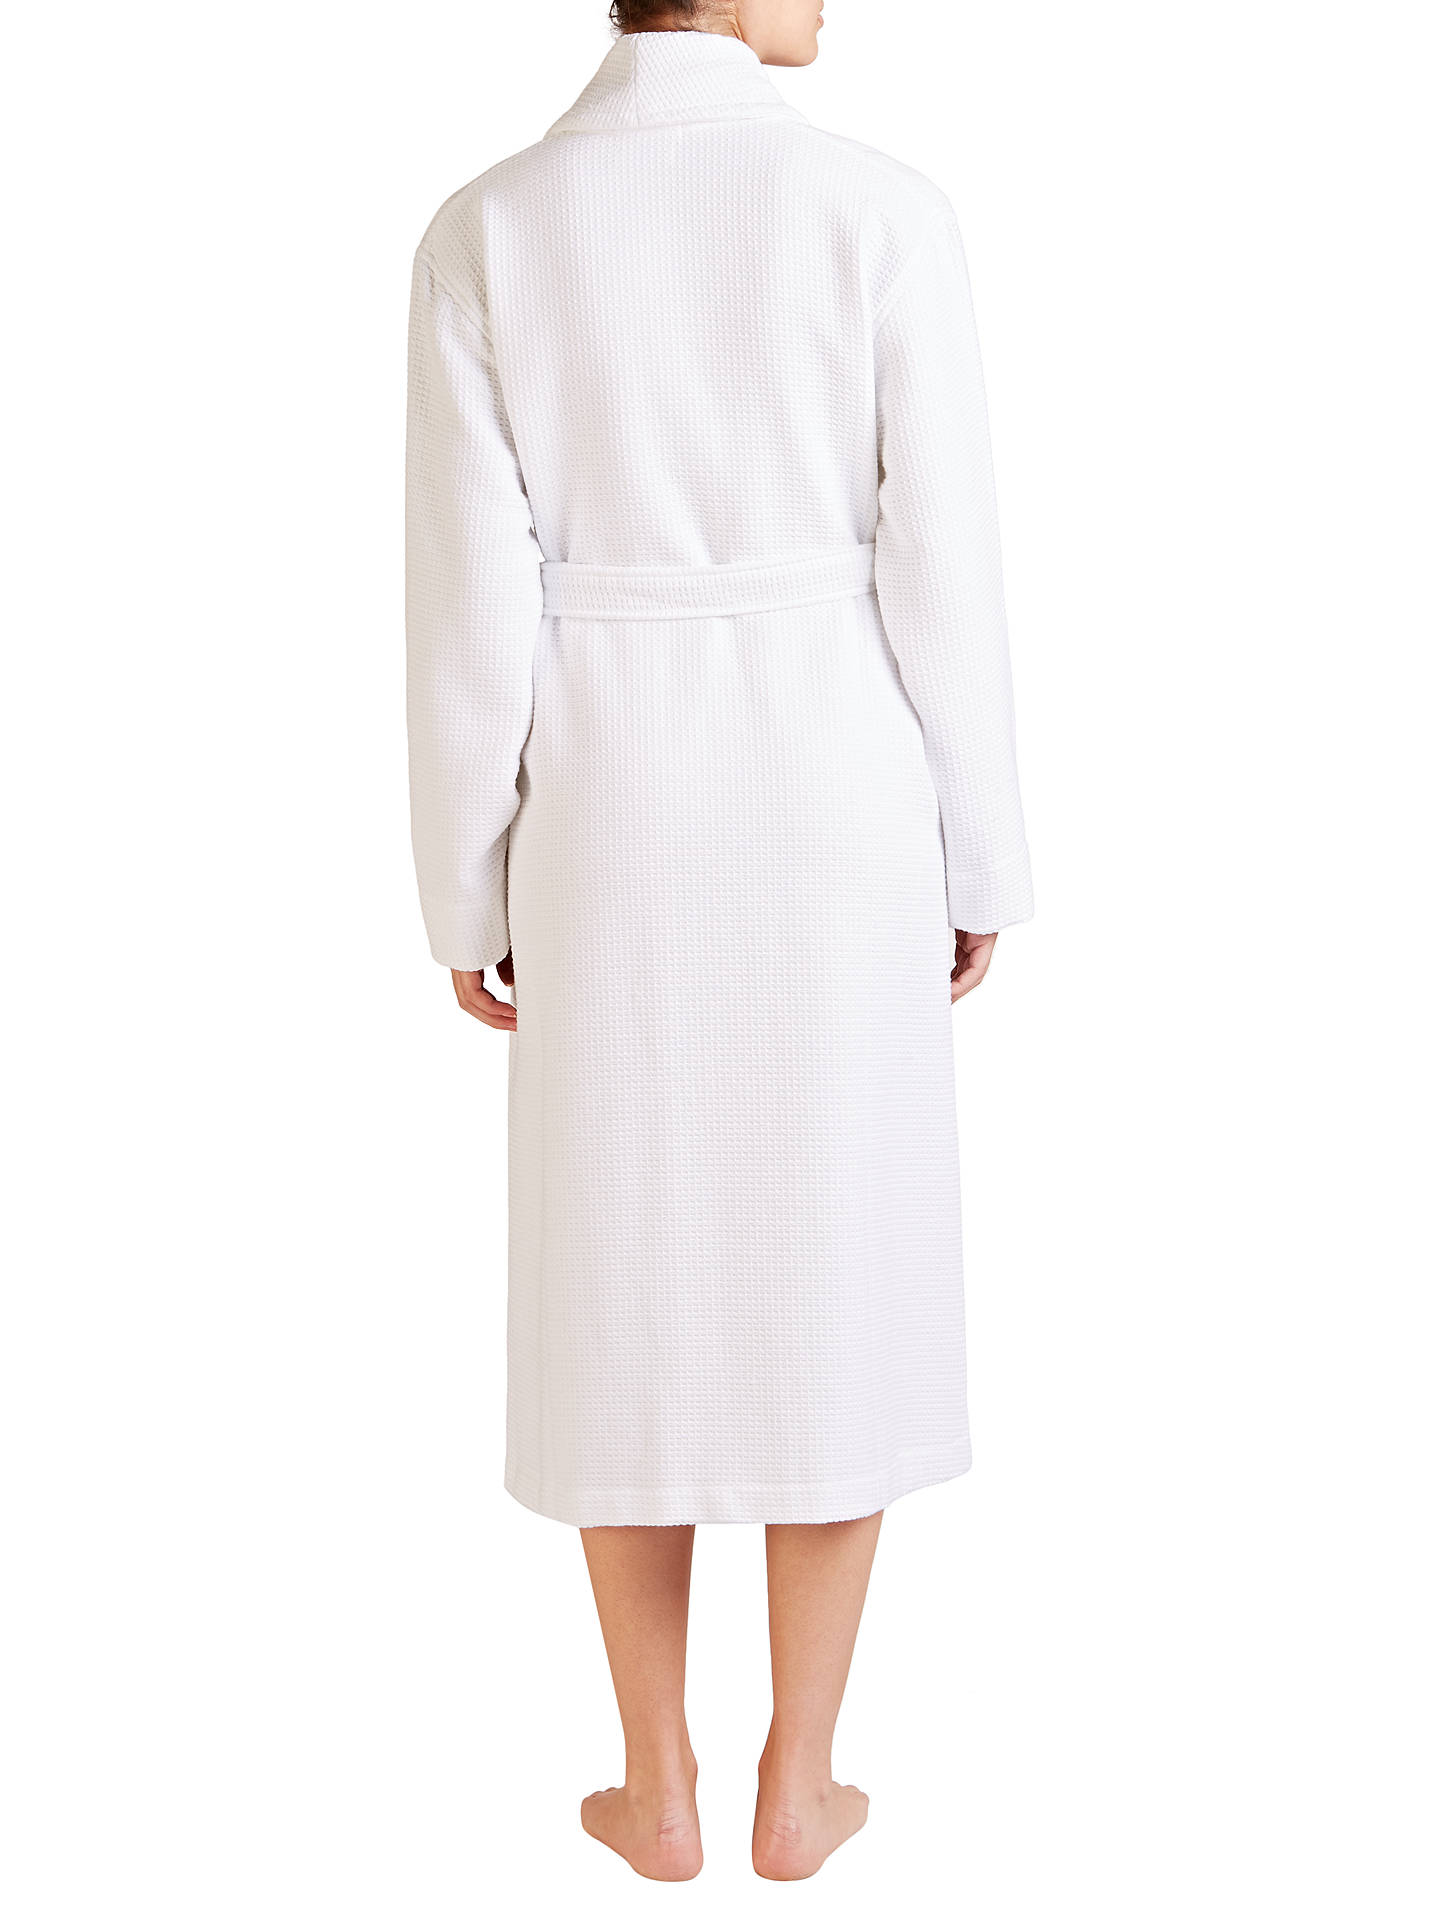 BuyJohn Lewis & Partners Spa Waffle Robe, White, S Online at johnlewis.com